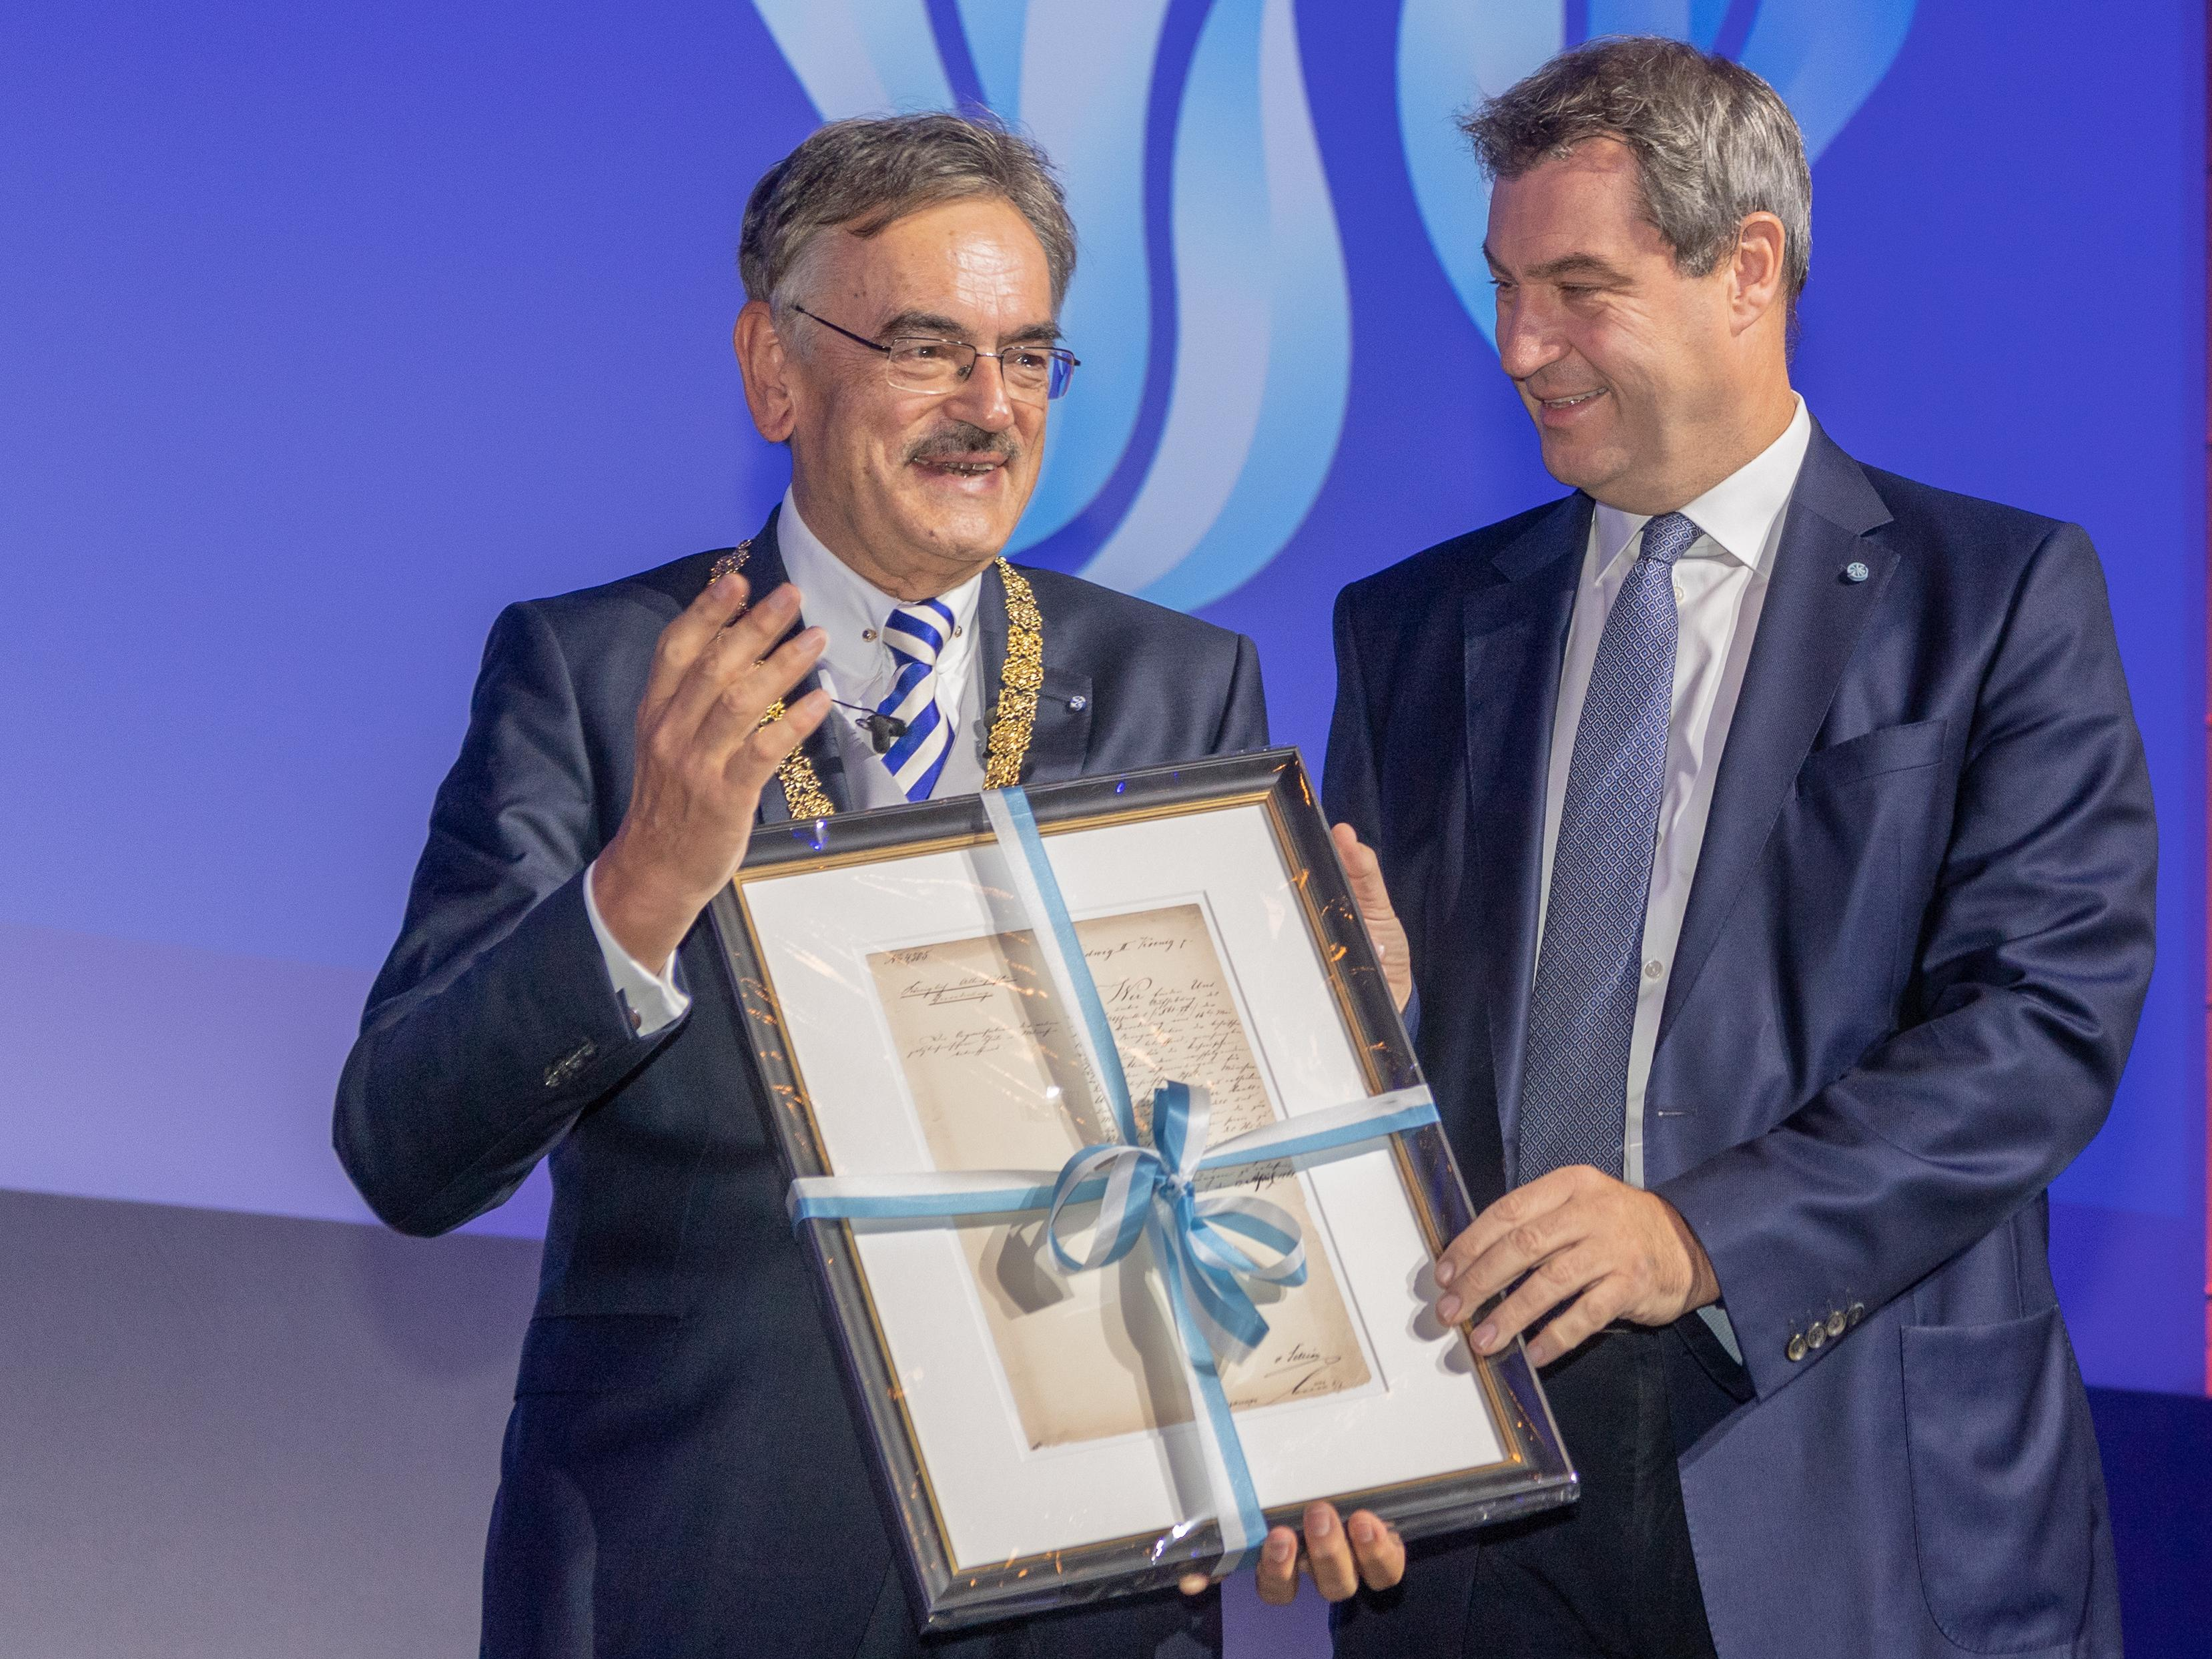 Minister President Markus Söder presents a reproduction of the charter of today's TUM to Wolfgang A. Herrmann.